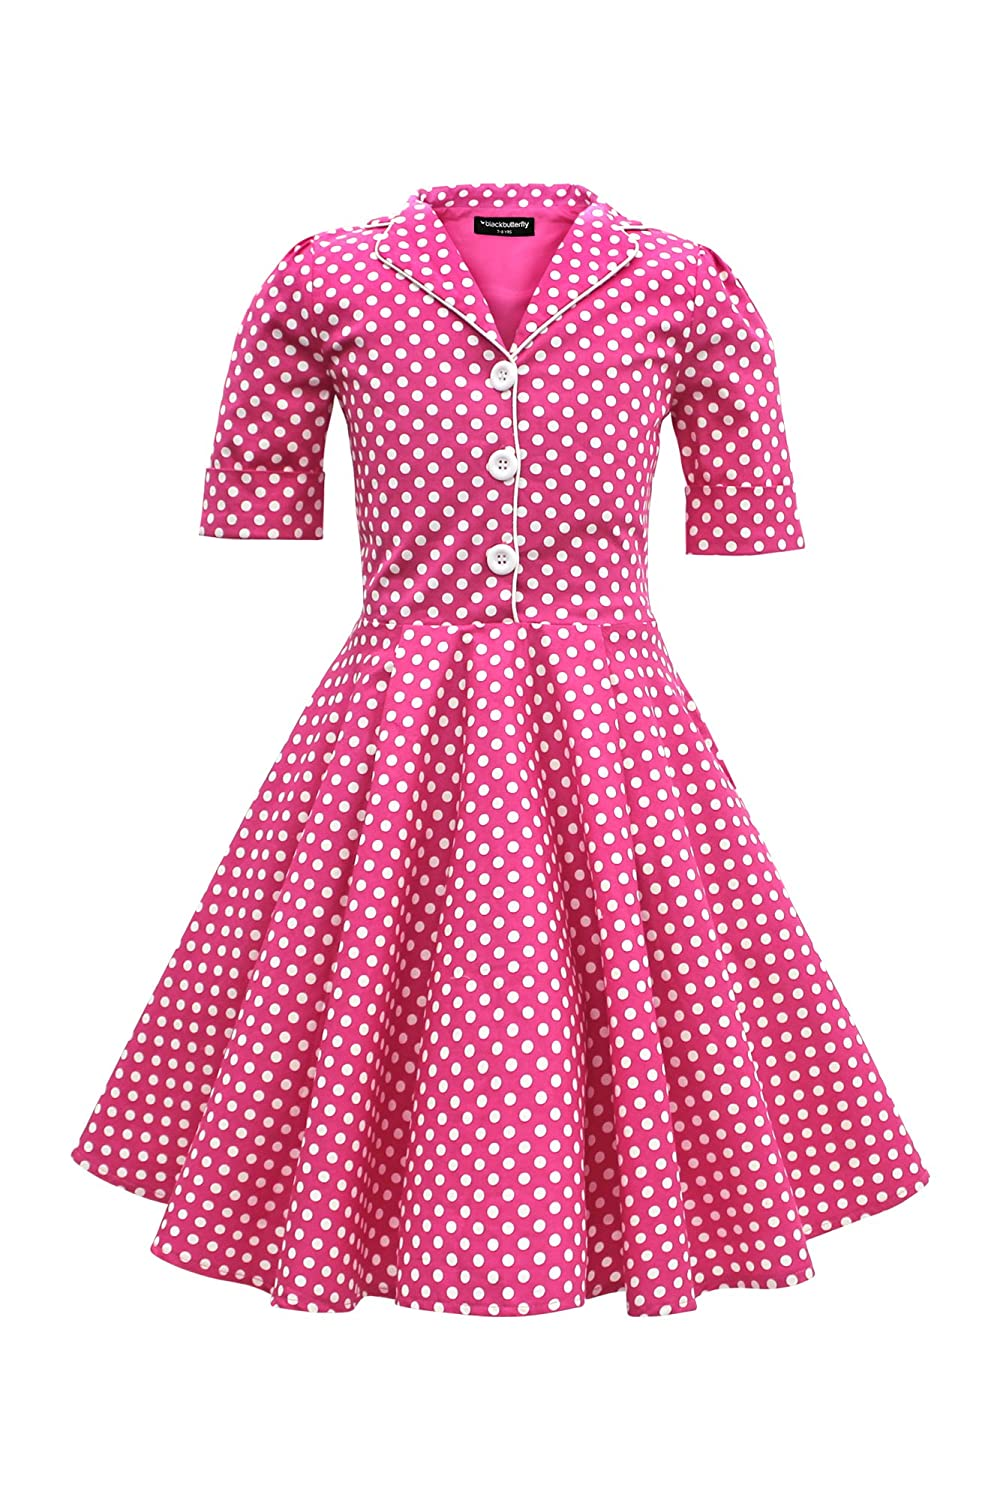 Vintage Style Children's Clothing: Girls, Boys, Baby, Toddler BlackButterfly Kids Sabrina Vintage Polka Dot 50s Girls Dress $35.99 AT vintagedancer.com